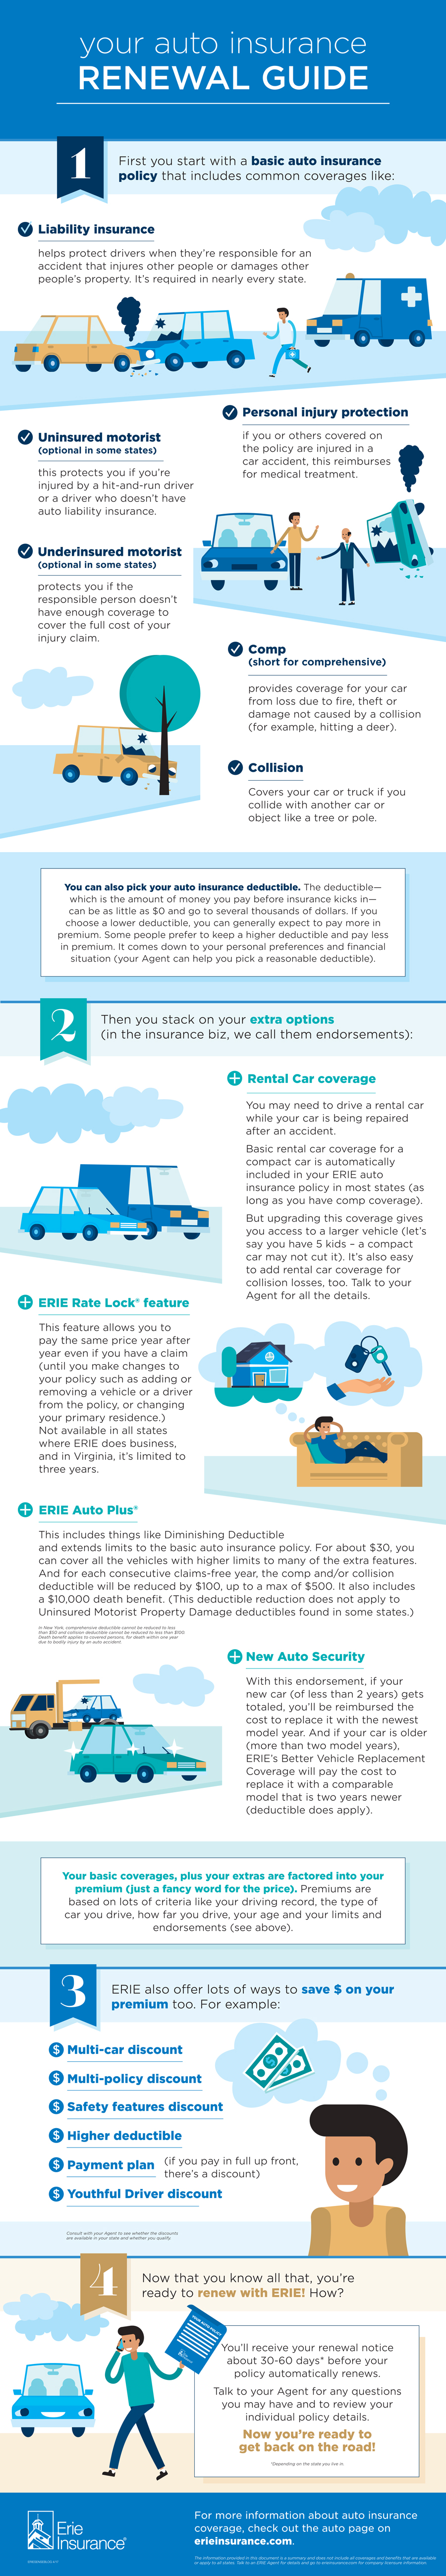 ErieSense_Blog_Auto_Renewal_Guide_Infographic_Final.jpg